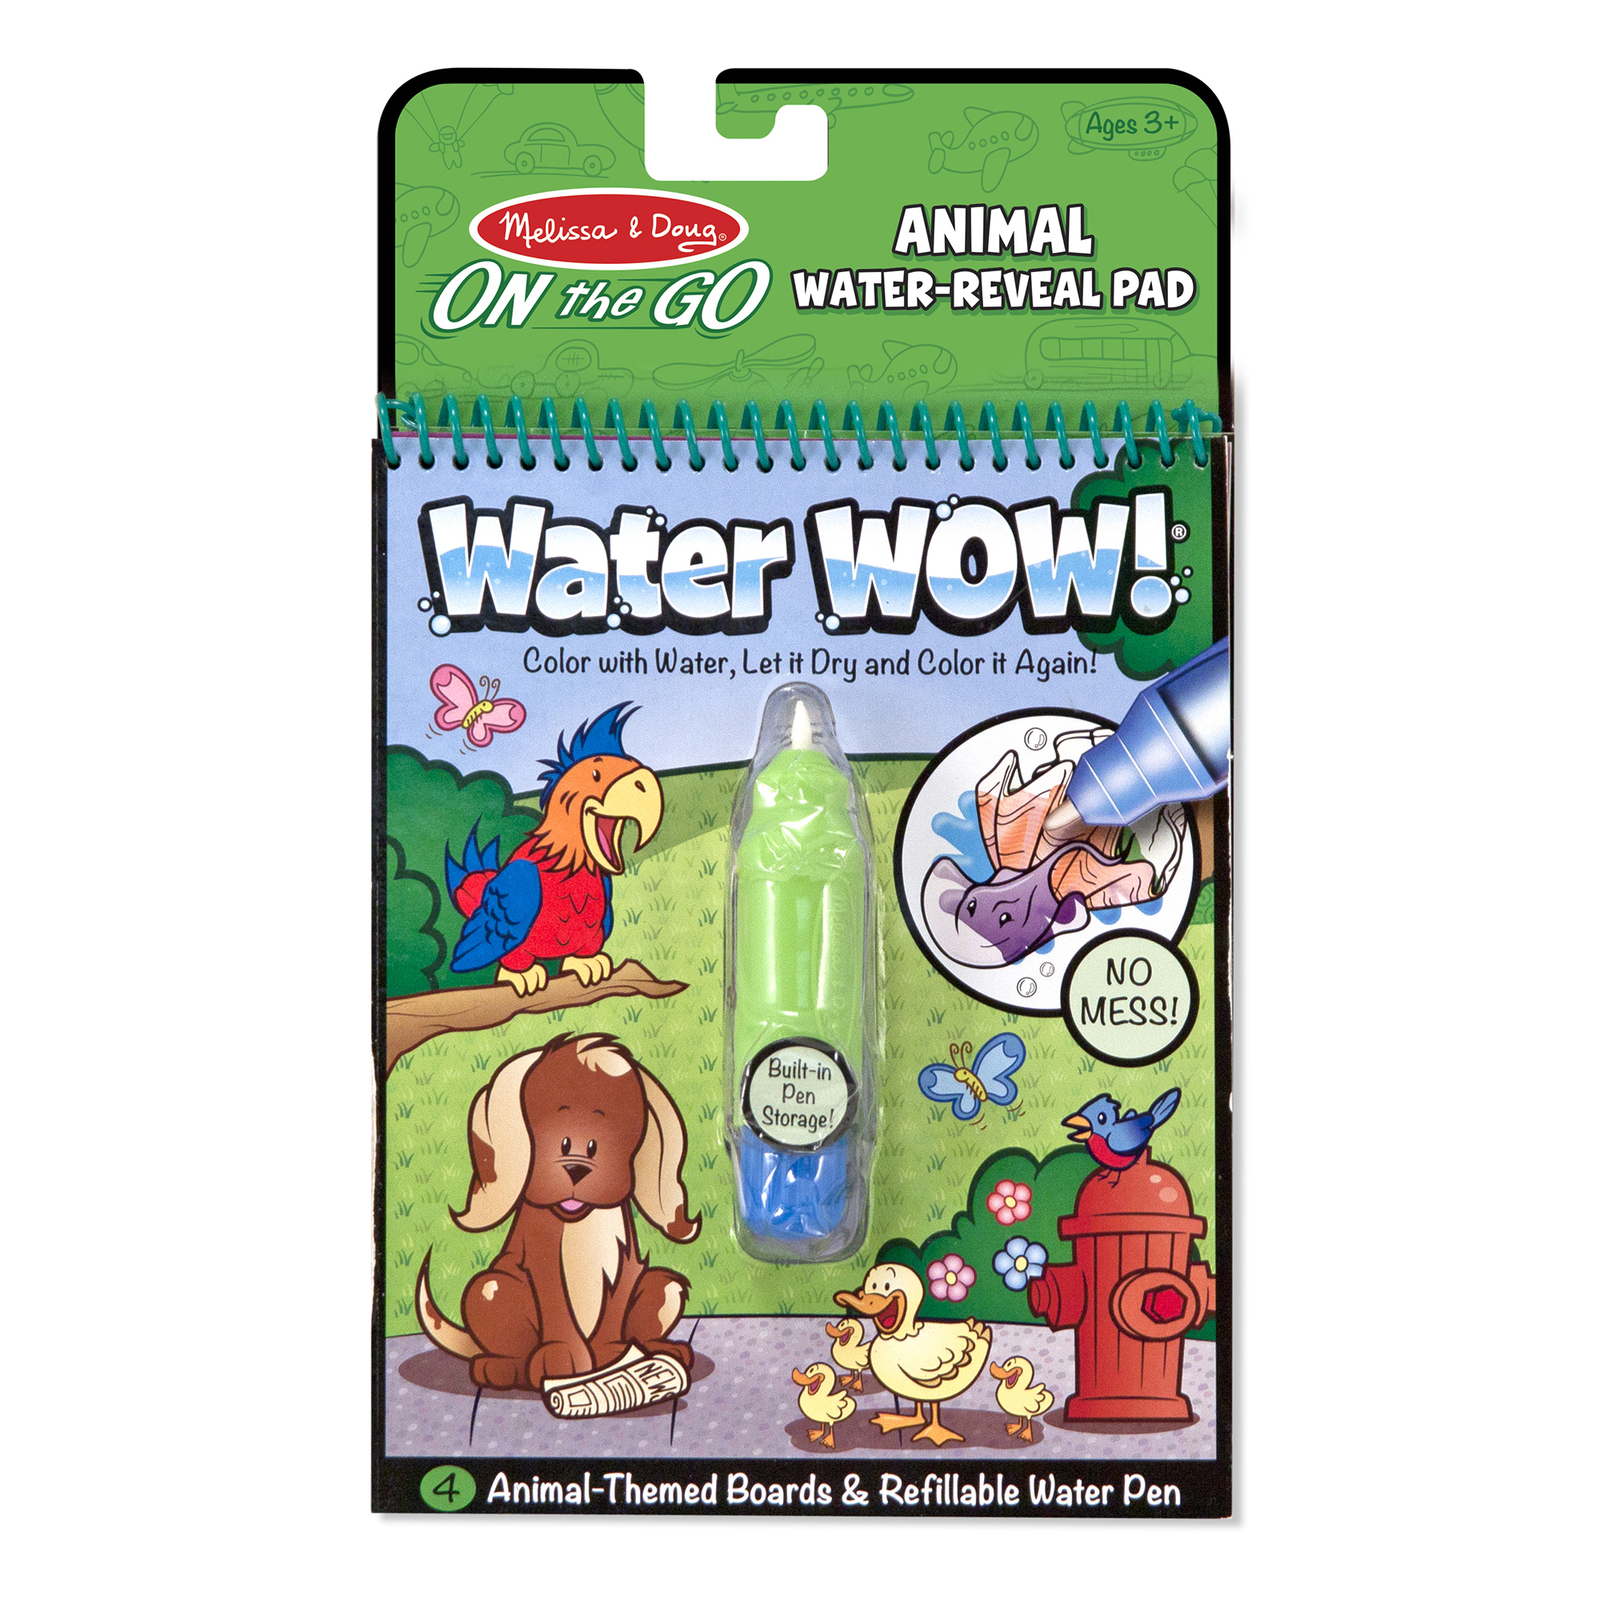 Primary image for Melissa & Doug On the Go Water Wow! Animals Reusable Water-Reveal Activity Pad,